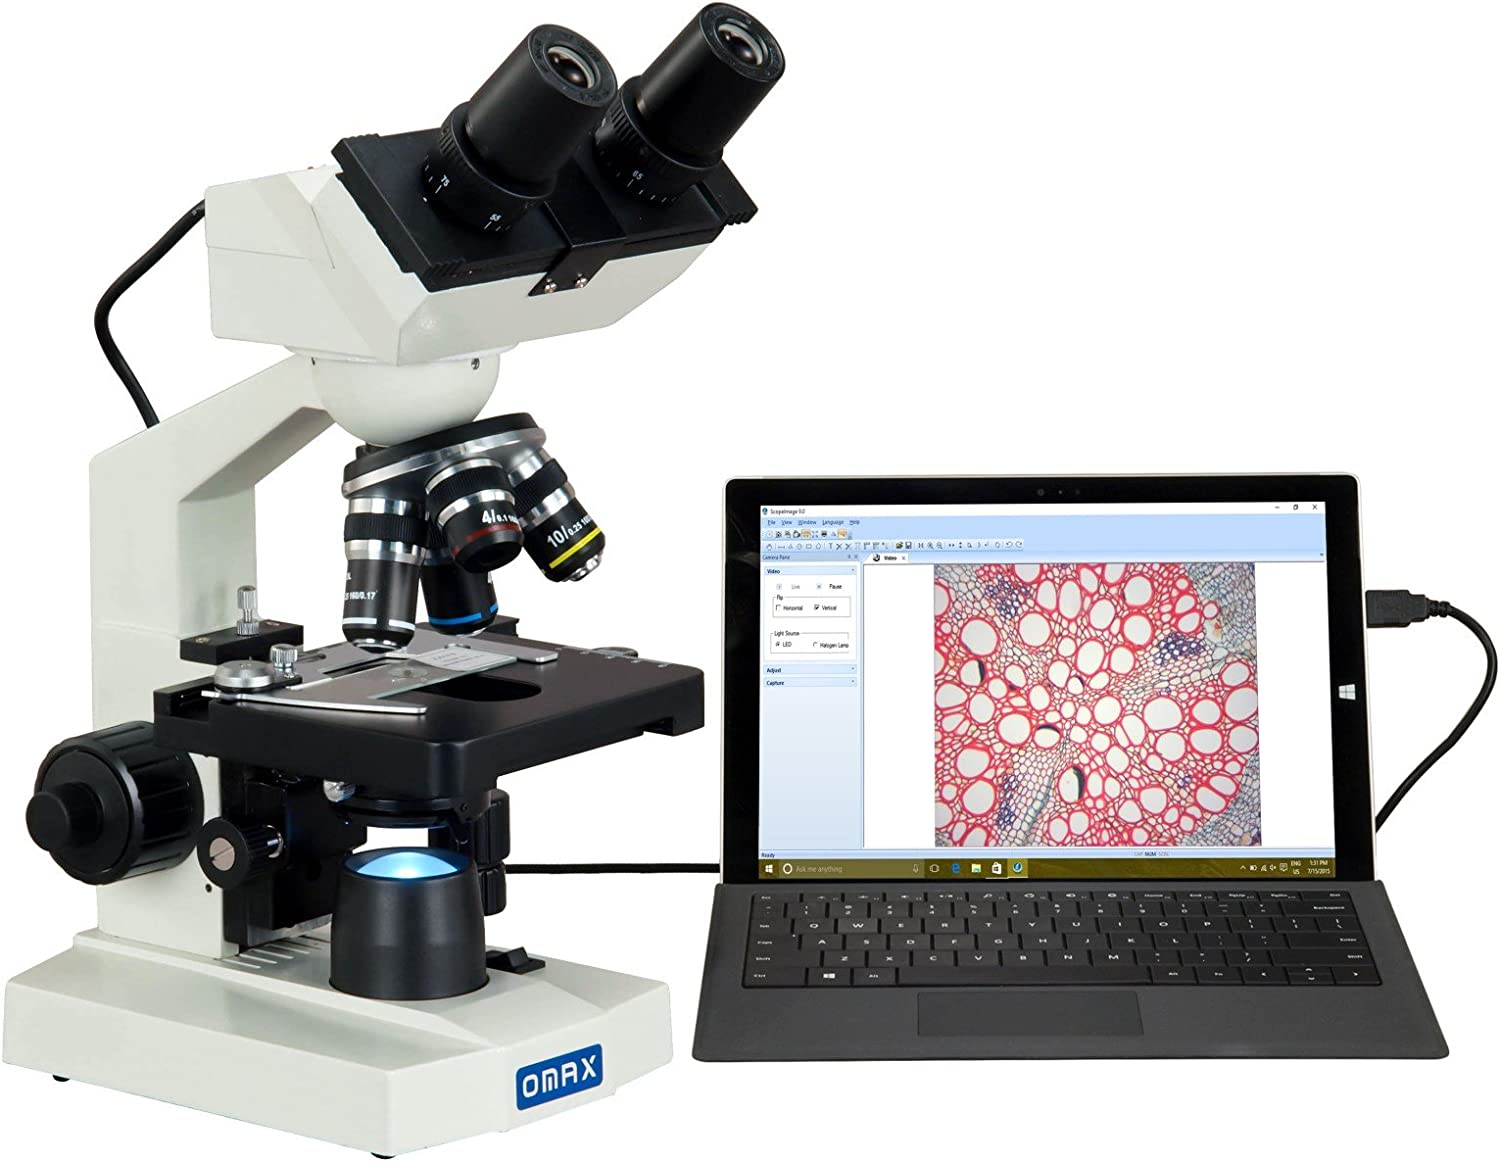 OMAX 40X-2000X Built-in 3.0MP Digital Camera Compound LED Binocular Microscope with Vinyl Carrying Case